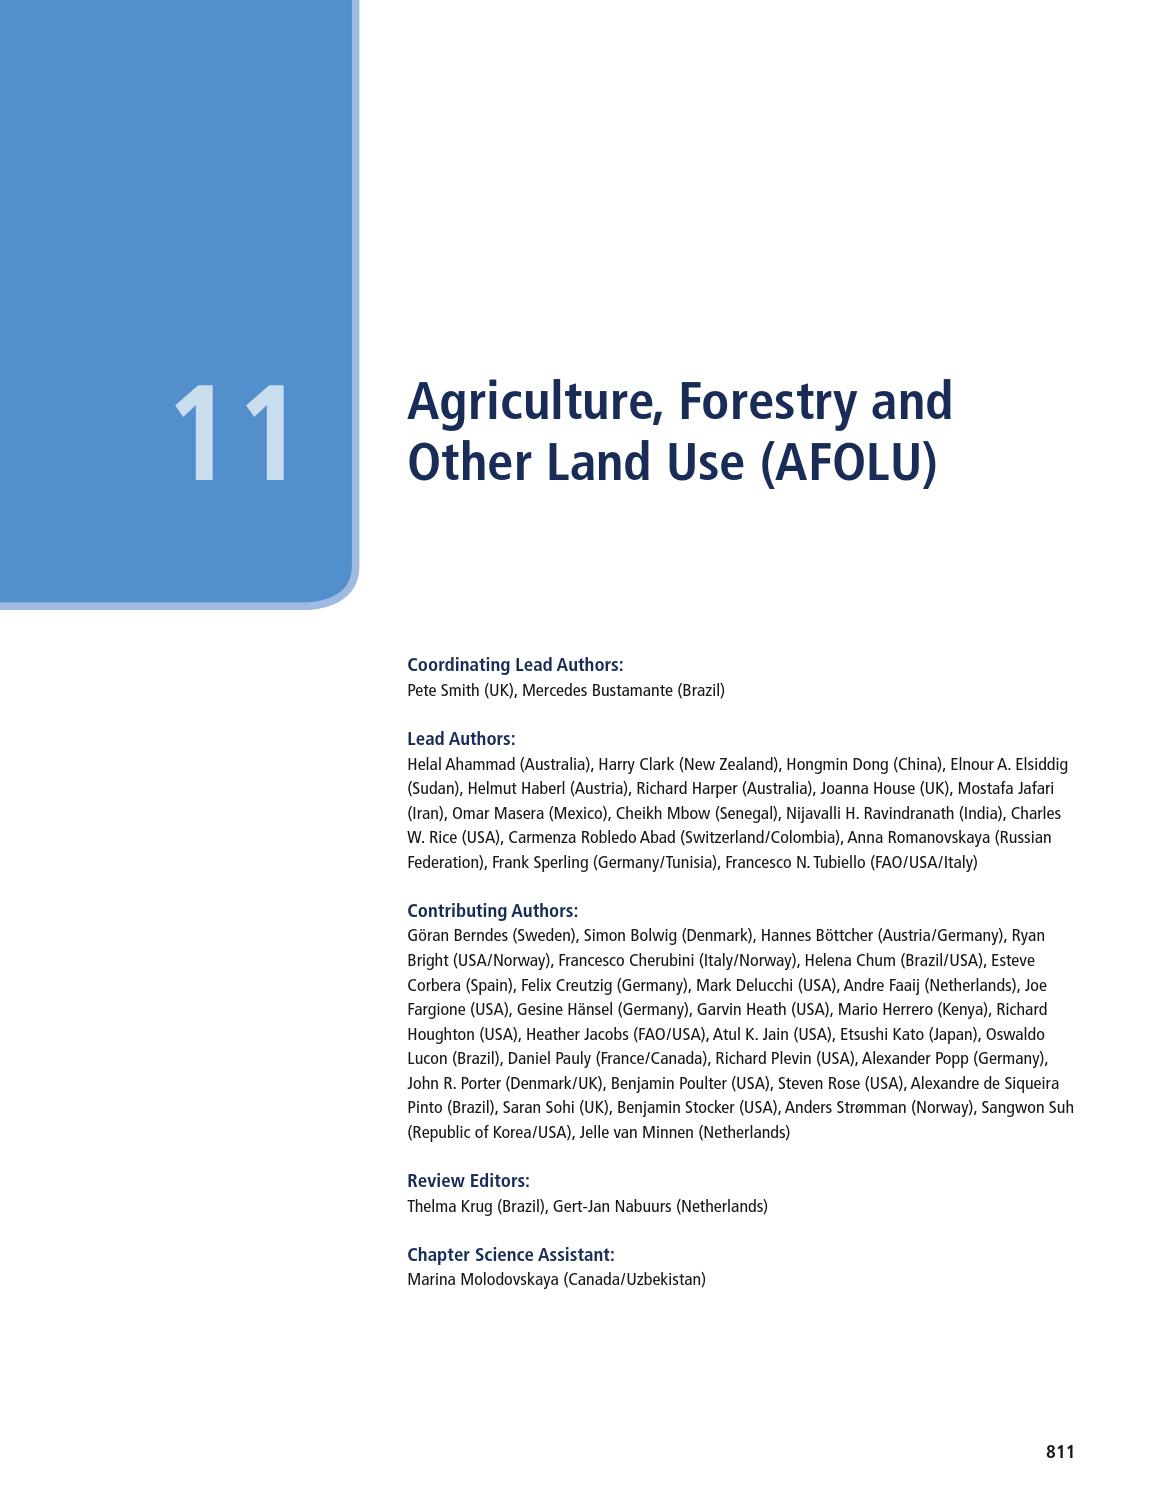 Ipcc chapter11 agriculture, forestry and other land use by